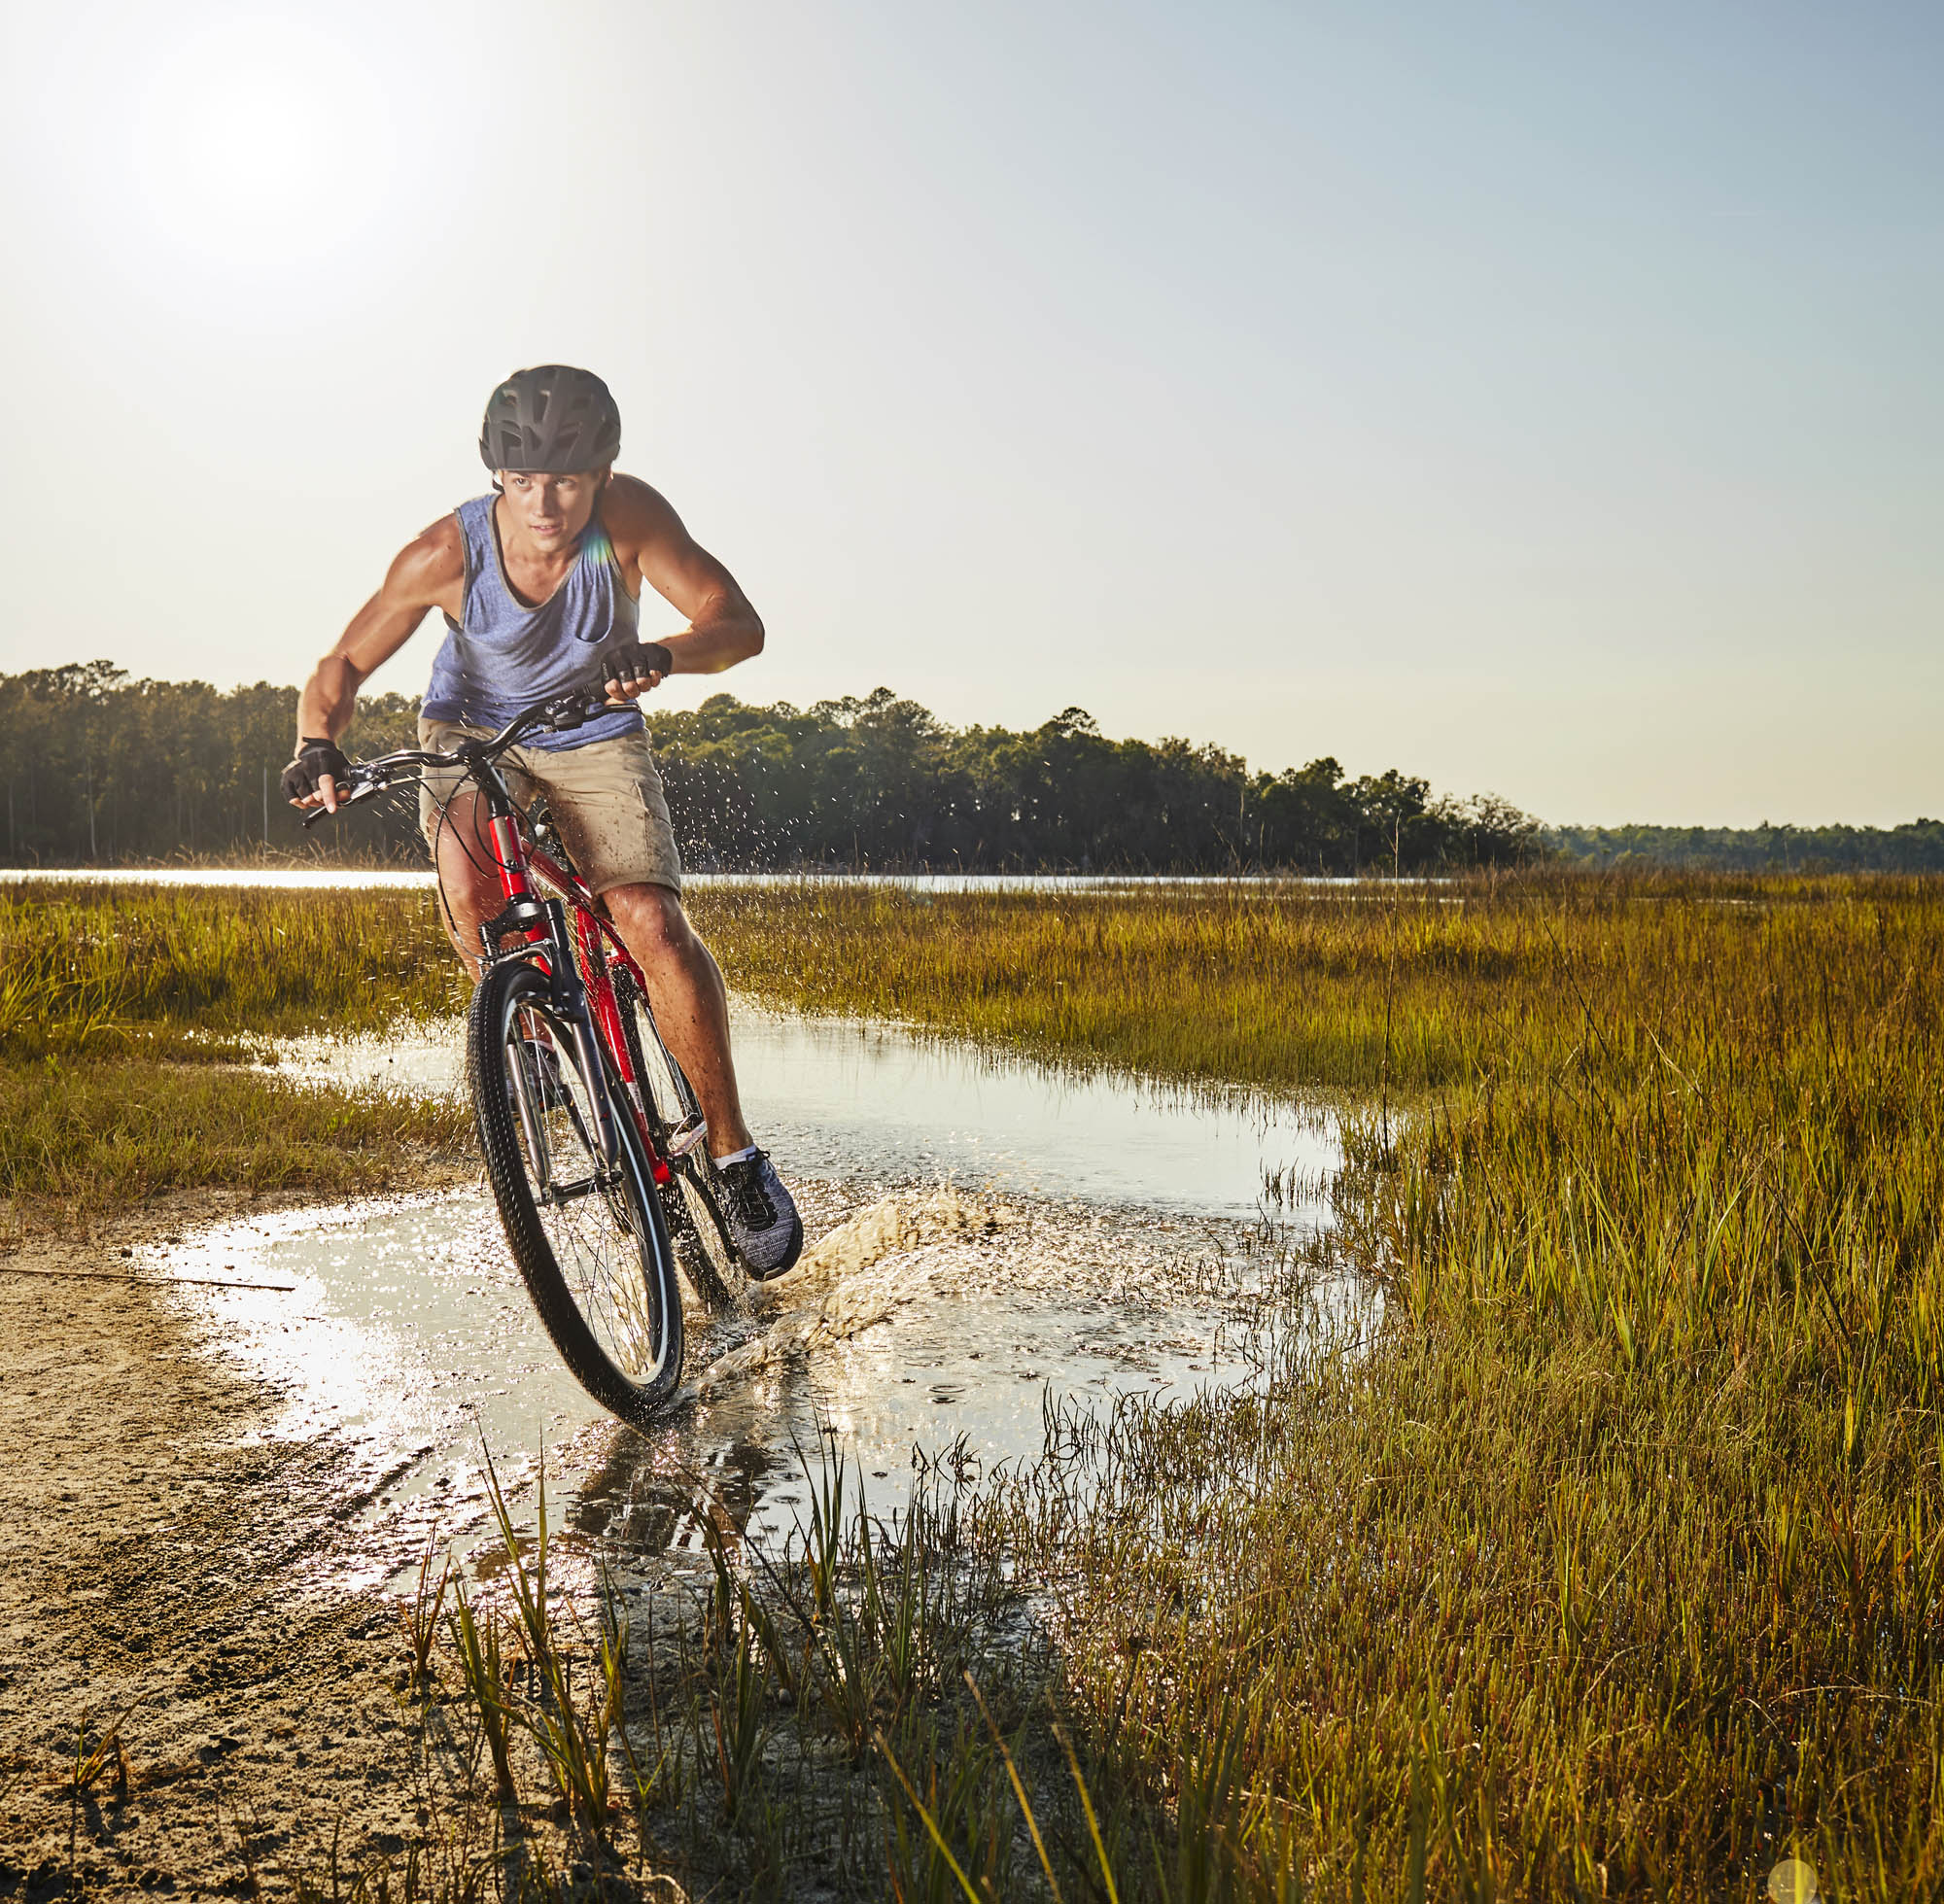 A young athletic man riding a bike through a wetland